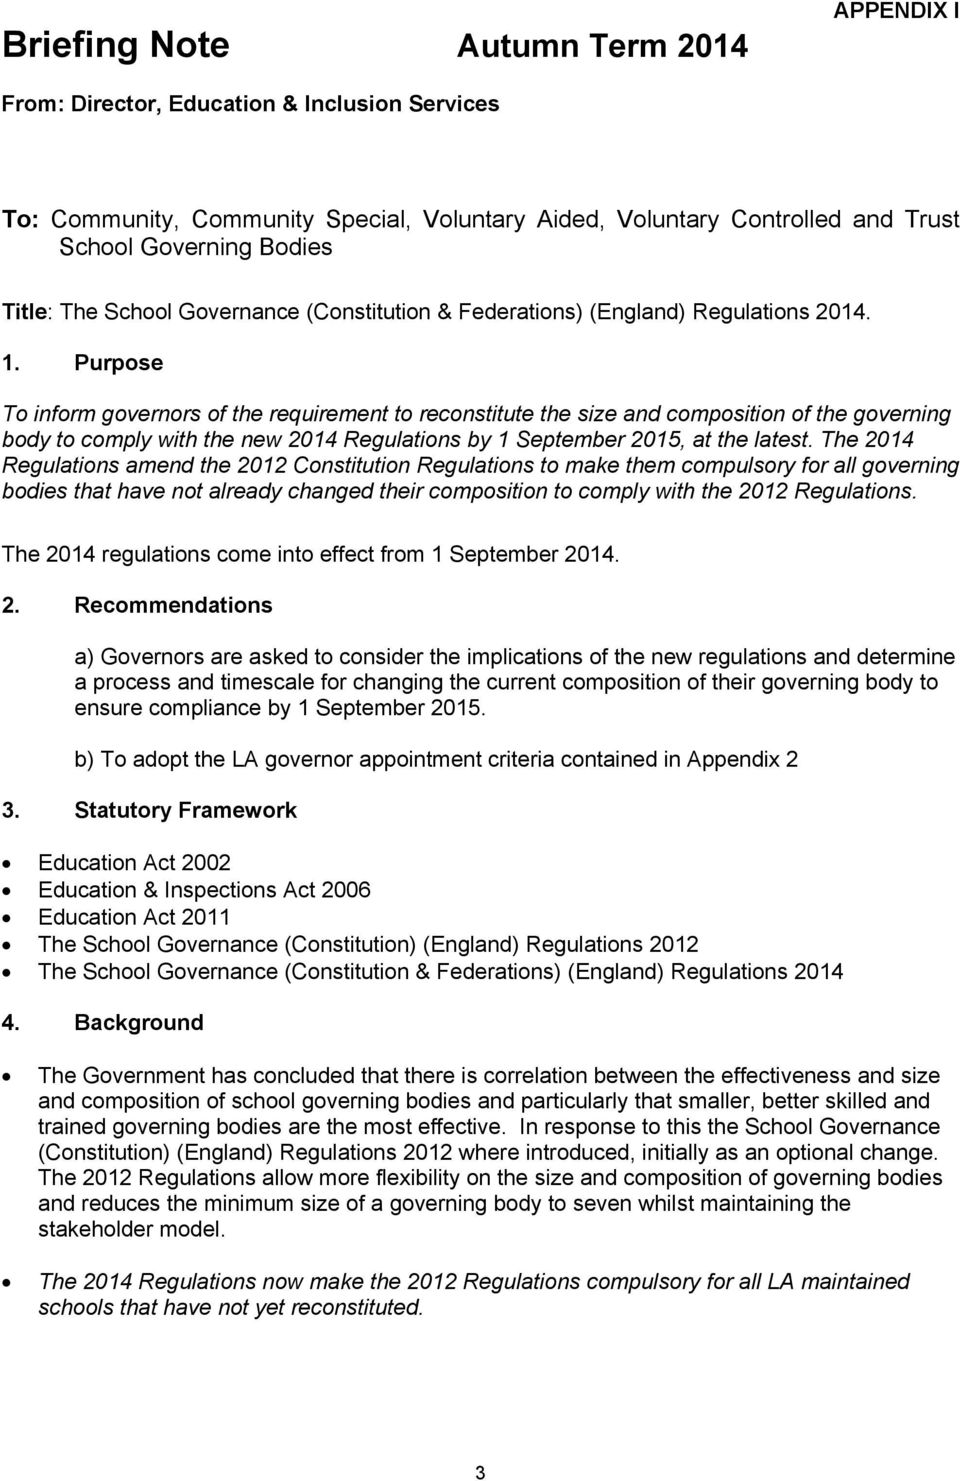 Purpose To inform governors of the requirement to reconstitute the size and composition of the governing body to comply with the new 2014 Regulations by 1 September 2015, at the latest.